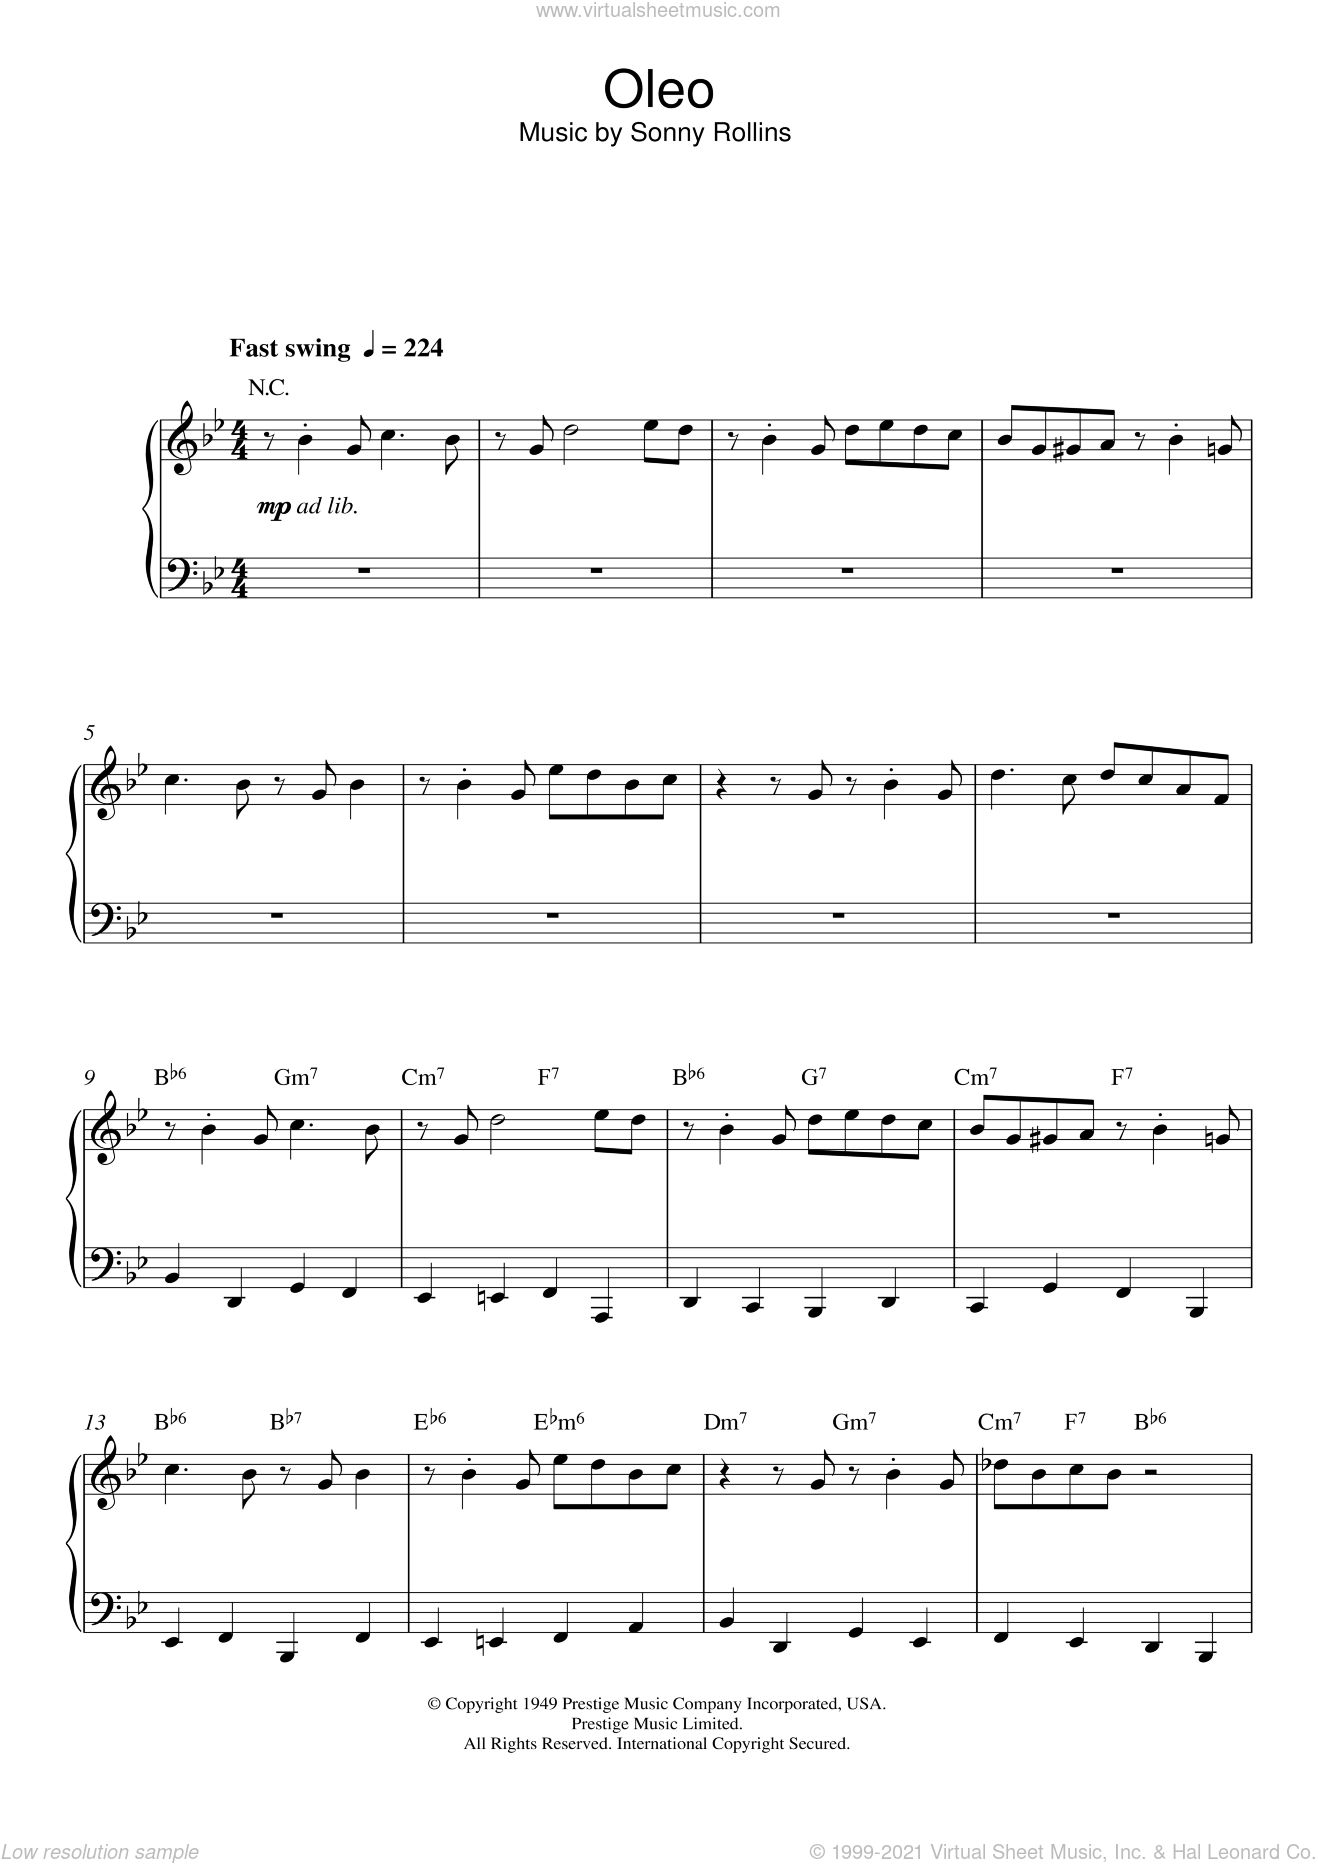 Oleo sheet music for piano solo by Sonny Rollins, intermediate skill level